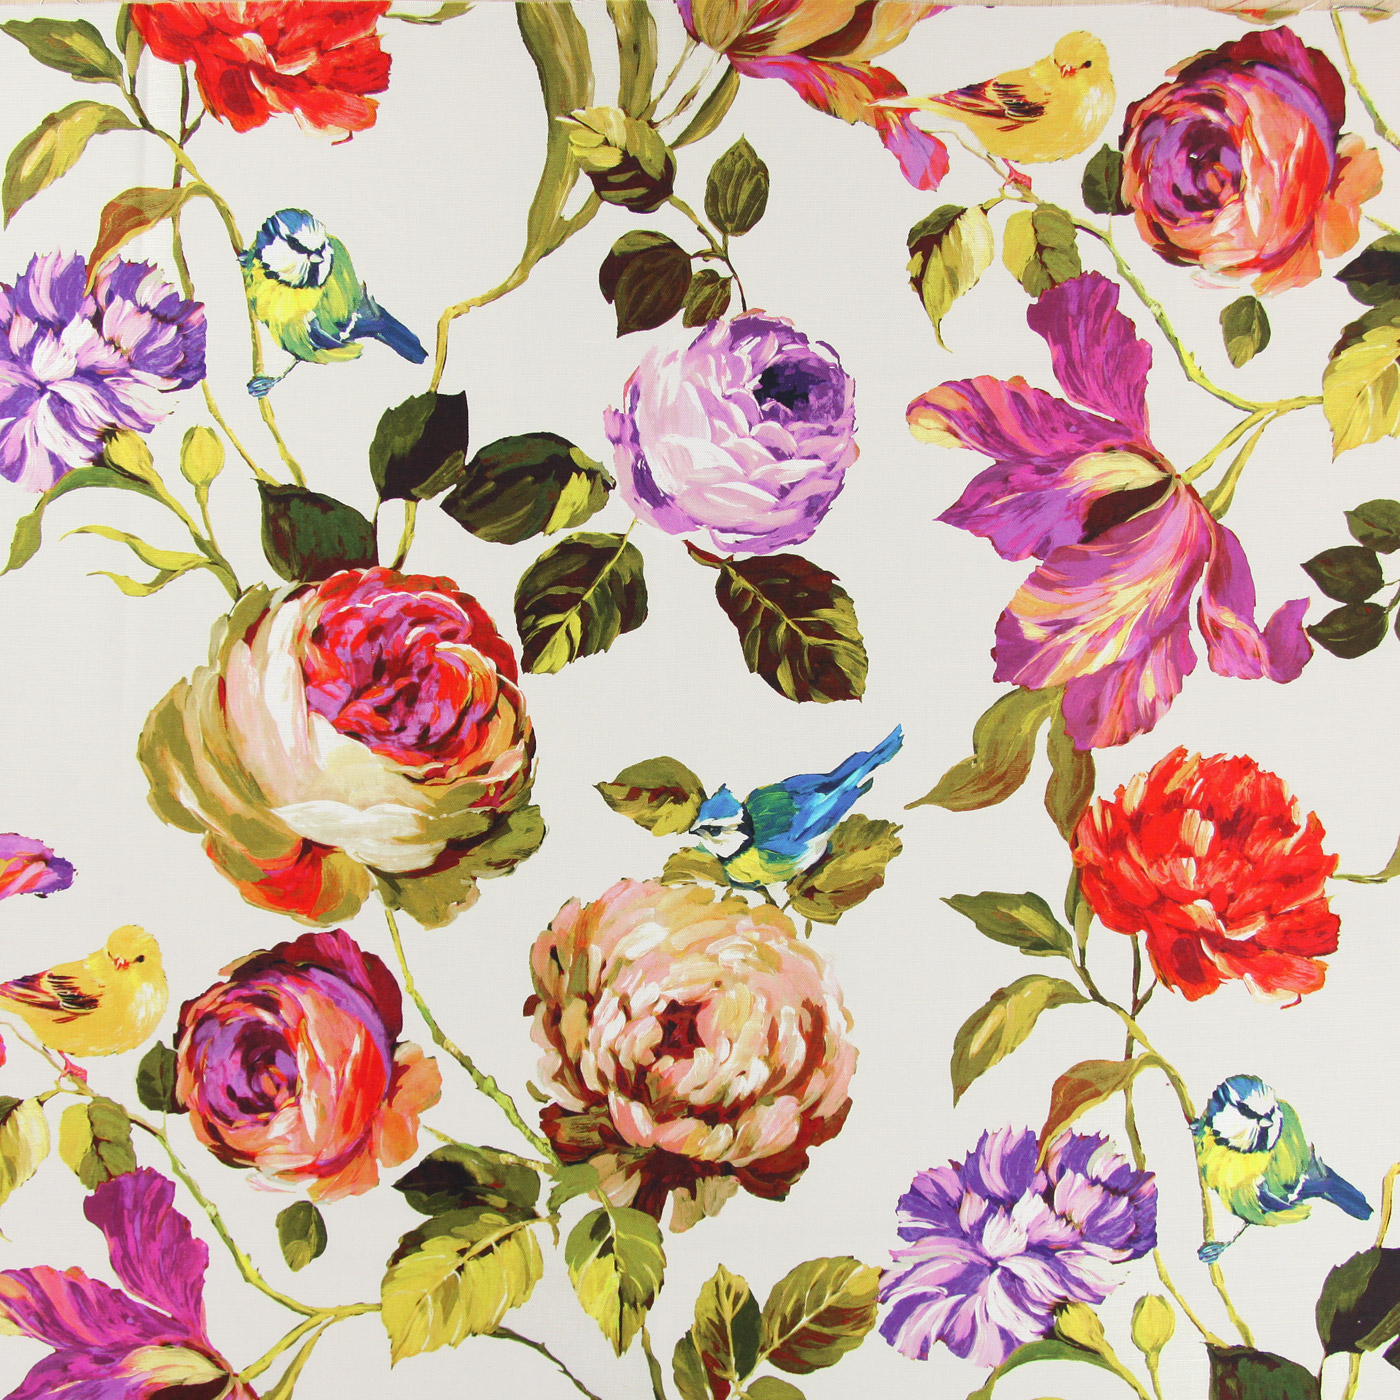 English rose garden wallpaper - English Rose Garden Wallpaper 84